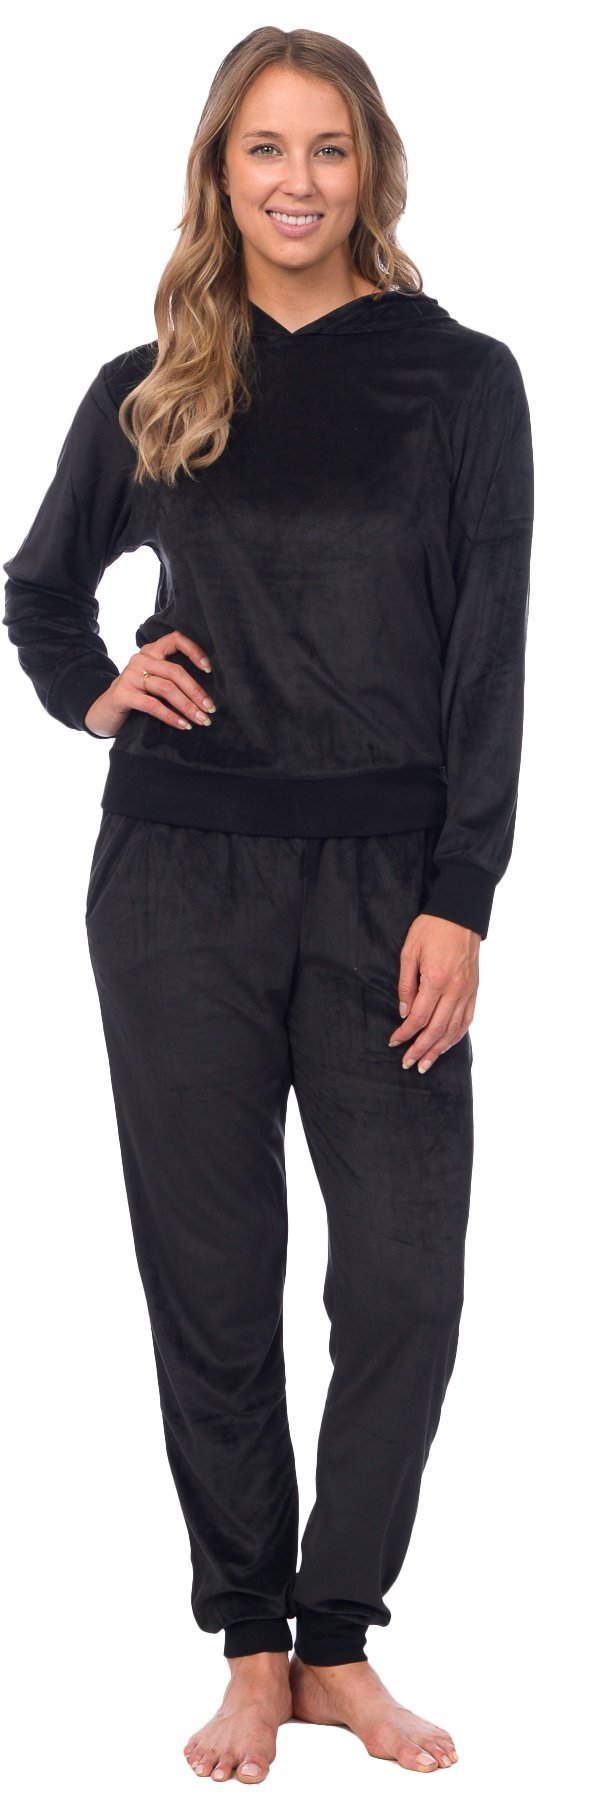 Pink Lady Womens Velour Pullover Hoodie and Bottoms Sporty Tracksuit (Jet Black, L)